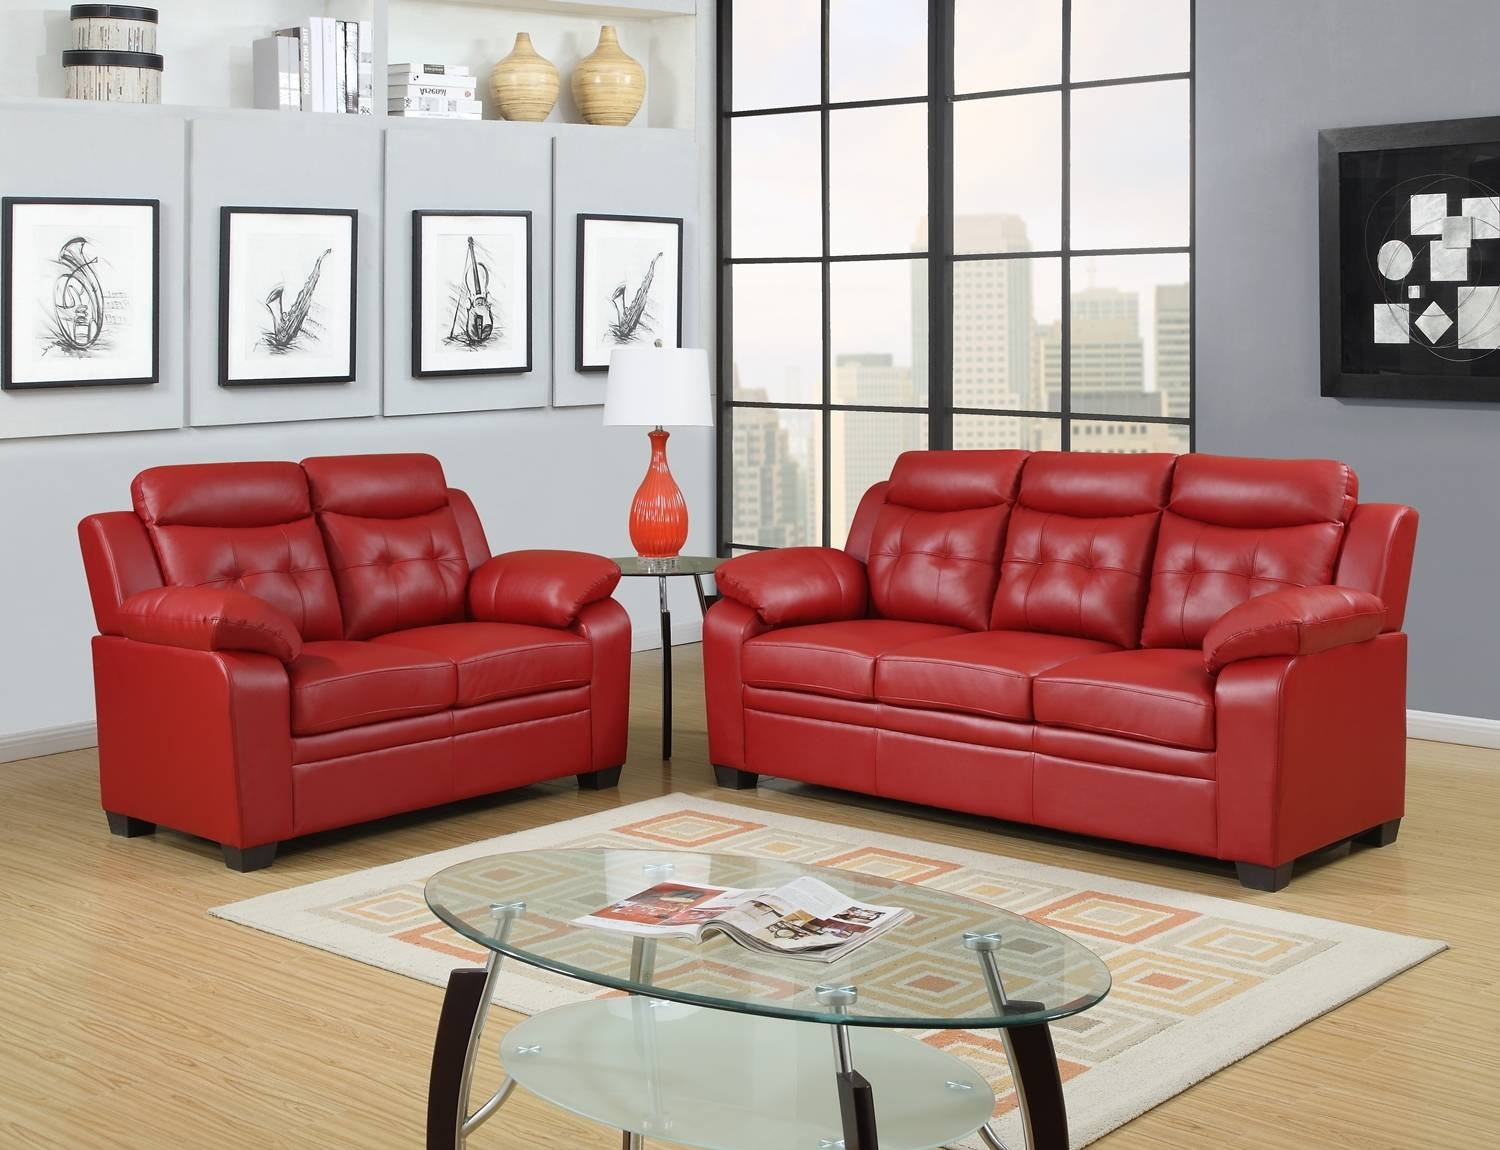 Sofas Center : Astounding Red Leather Sofa Sectional Wooden Floor for Cheap Red Sofas (Image 25 of 30)